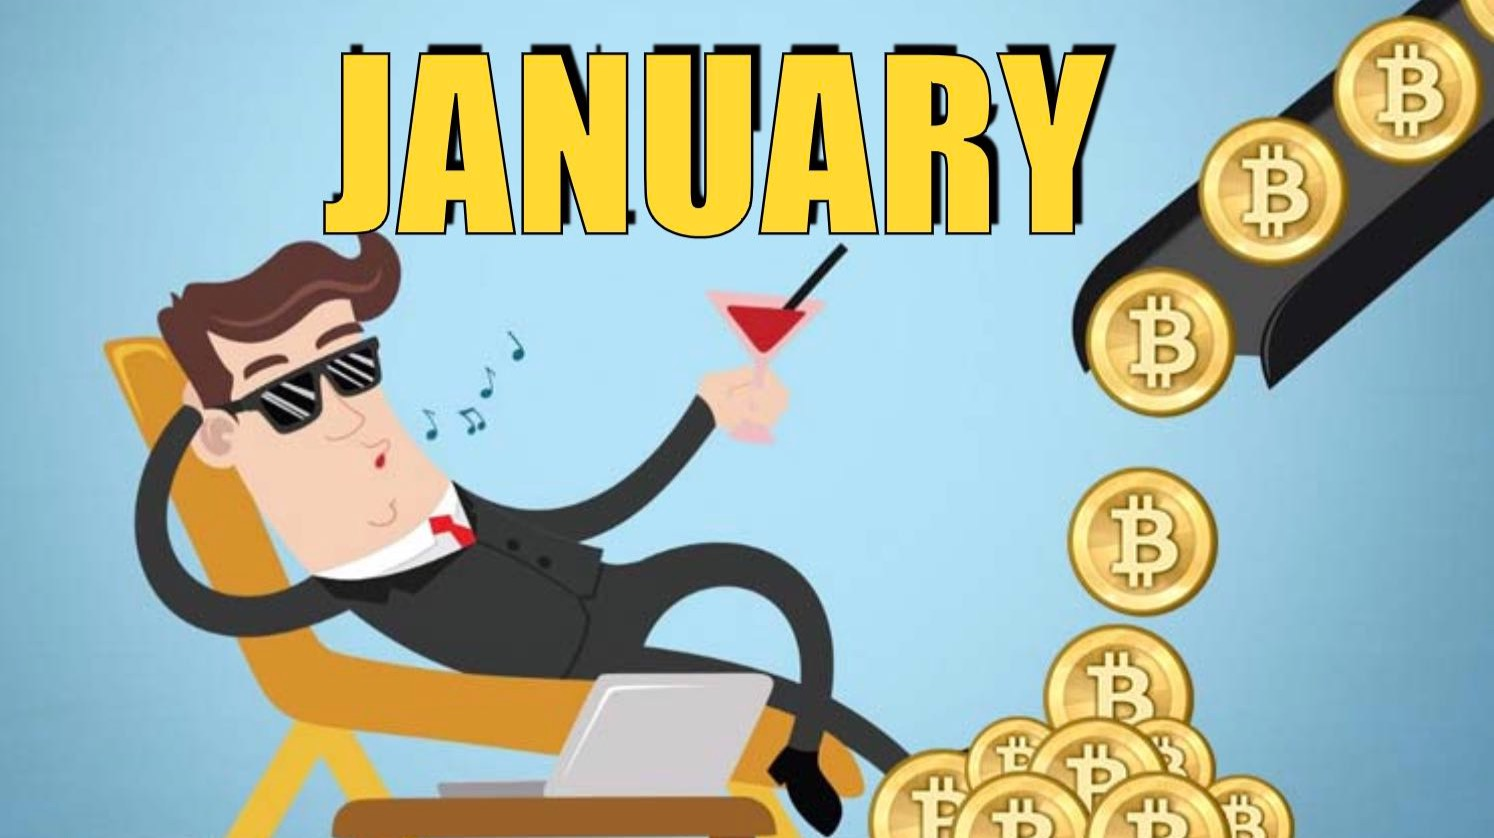 My Crypto Earnings This Month (January)